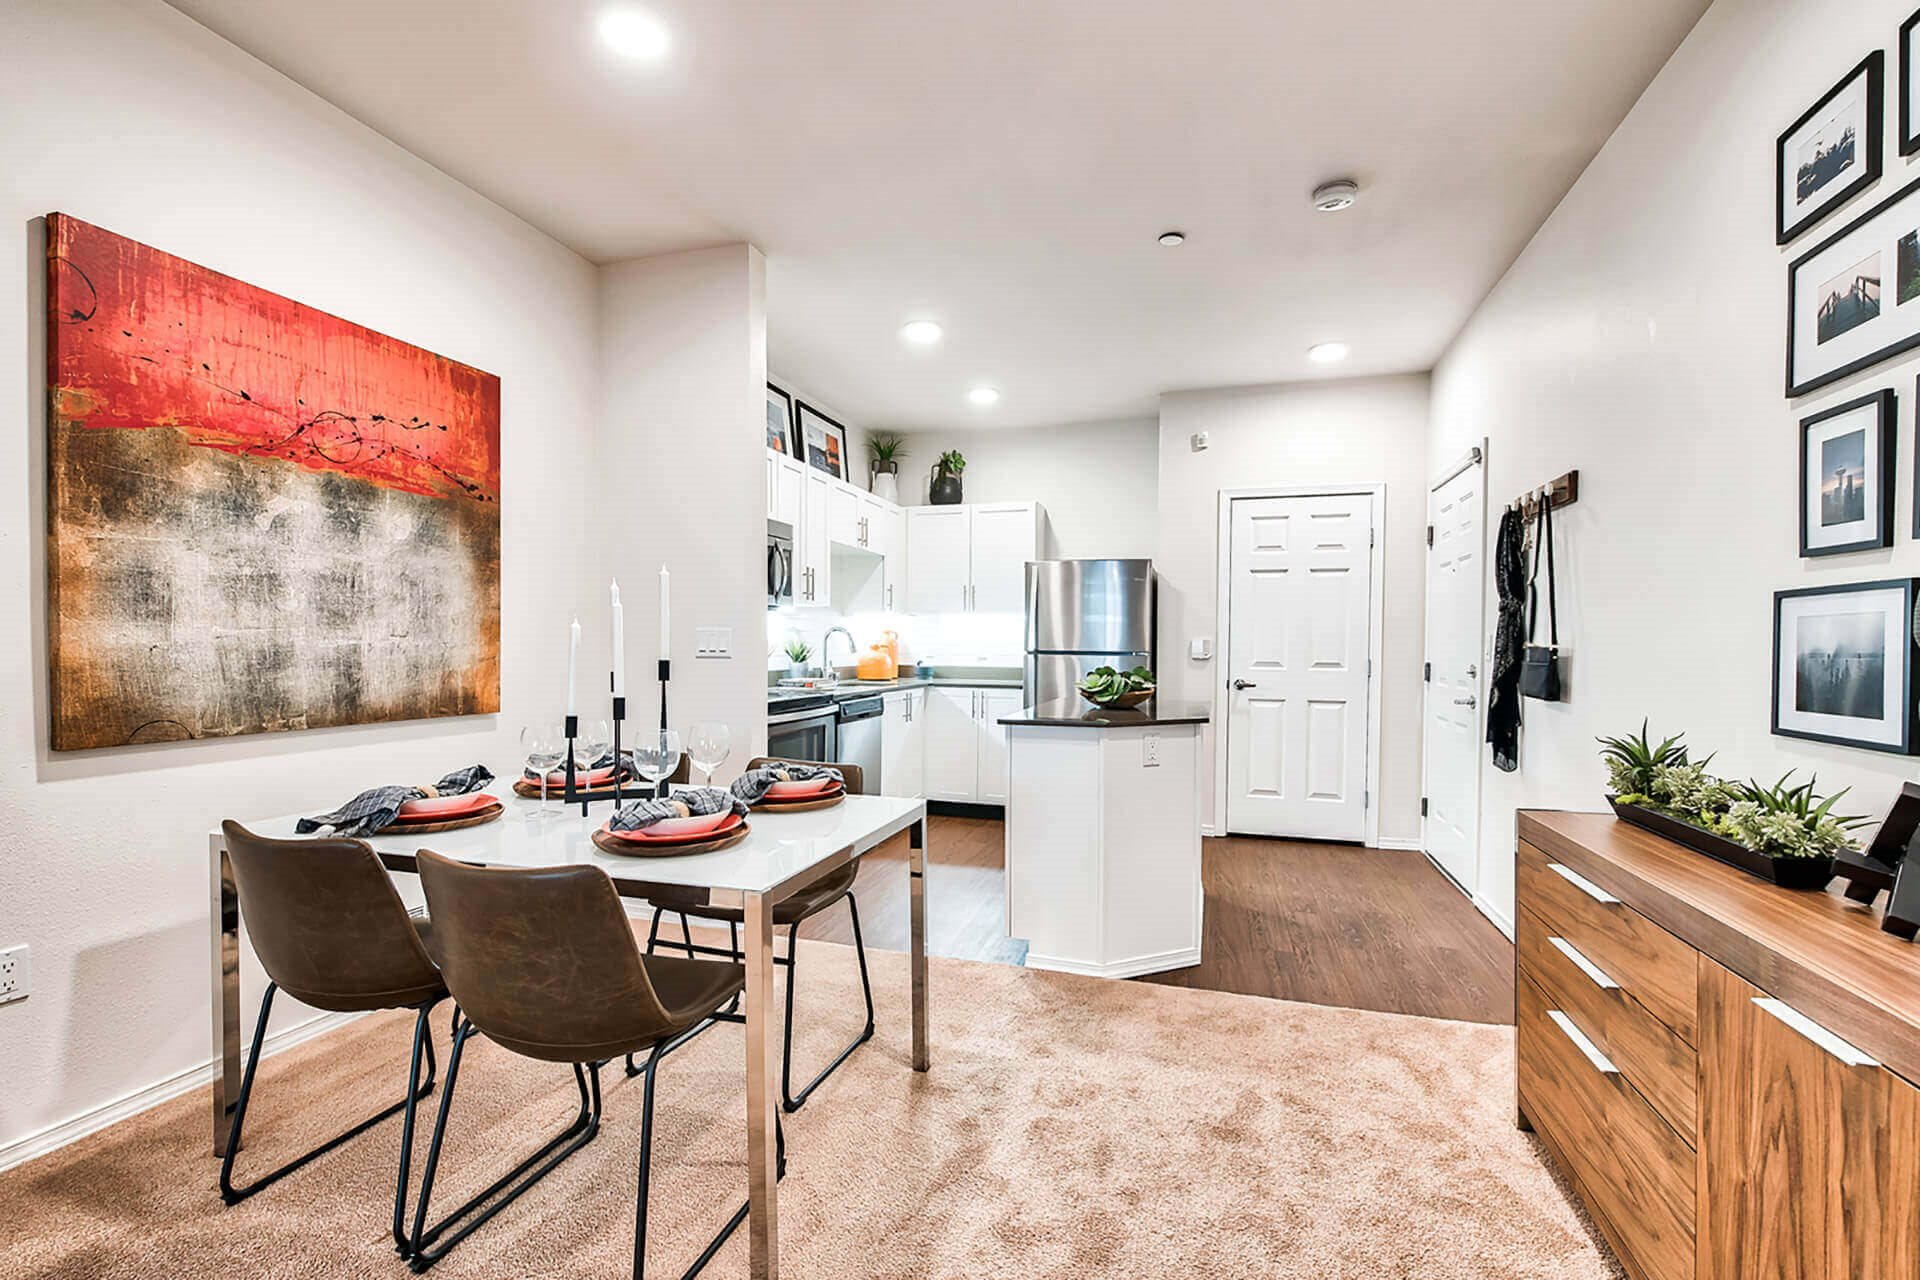 Wood flooring in kitchens at Reflections by Windsor, Redmond, WA